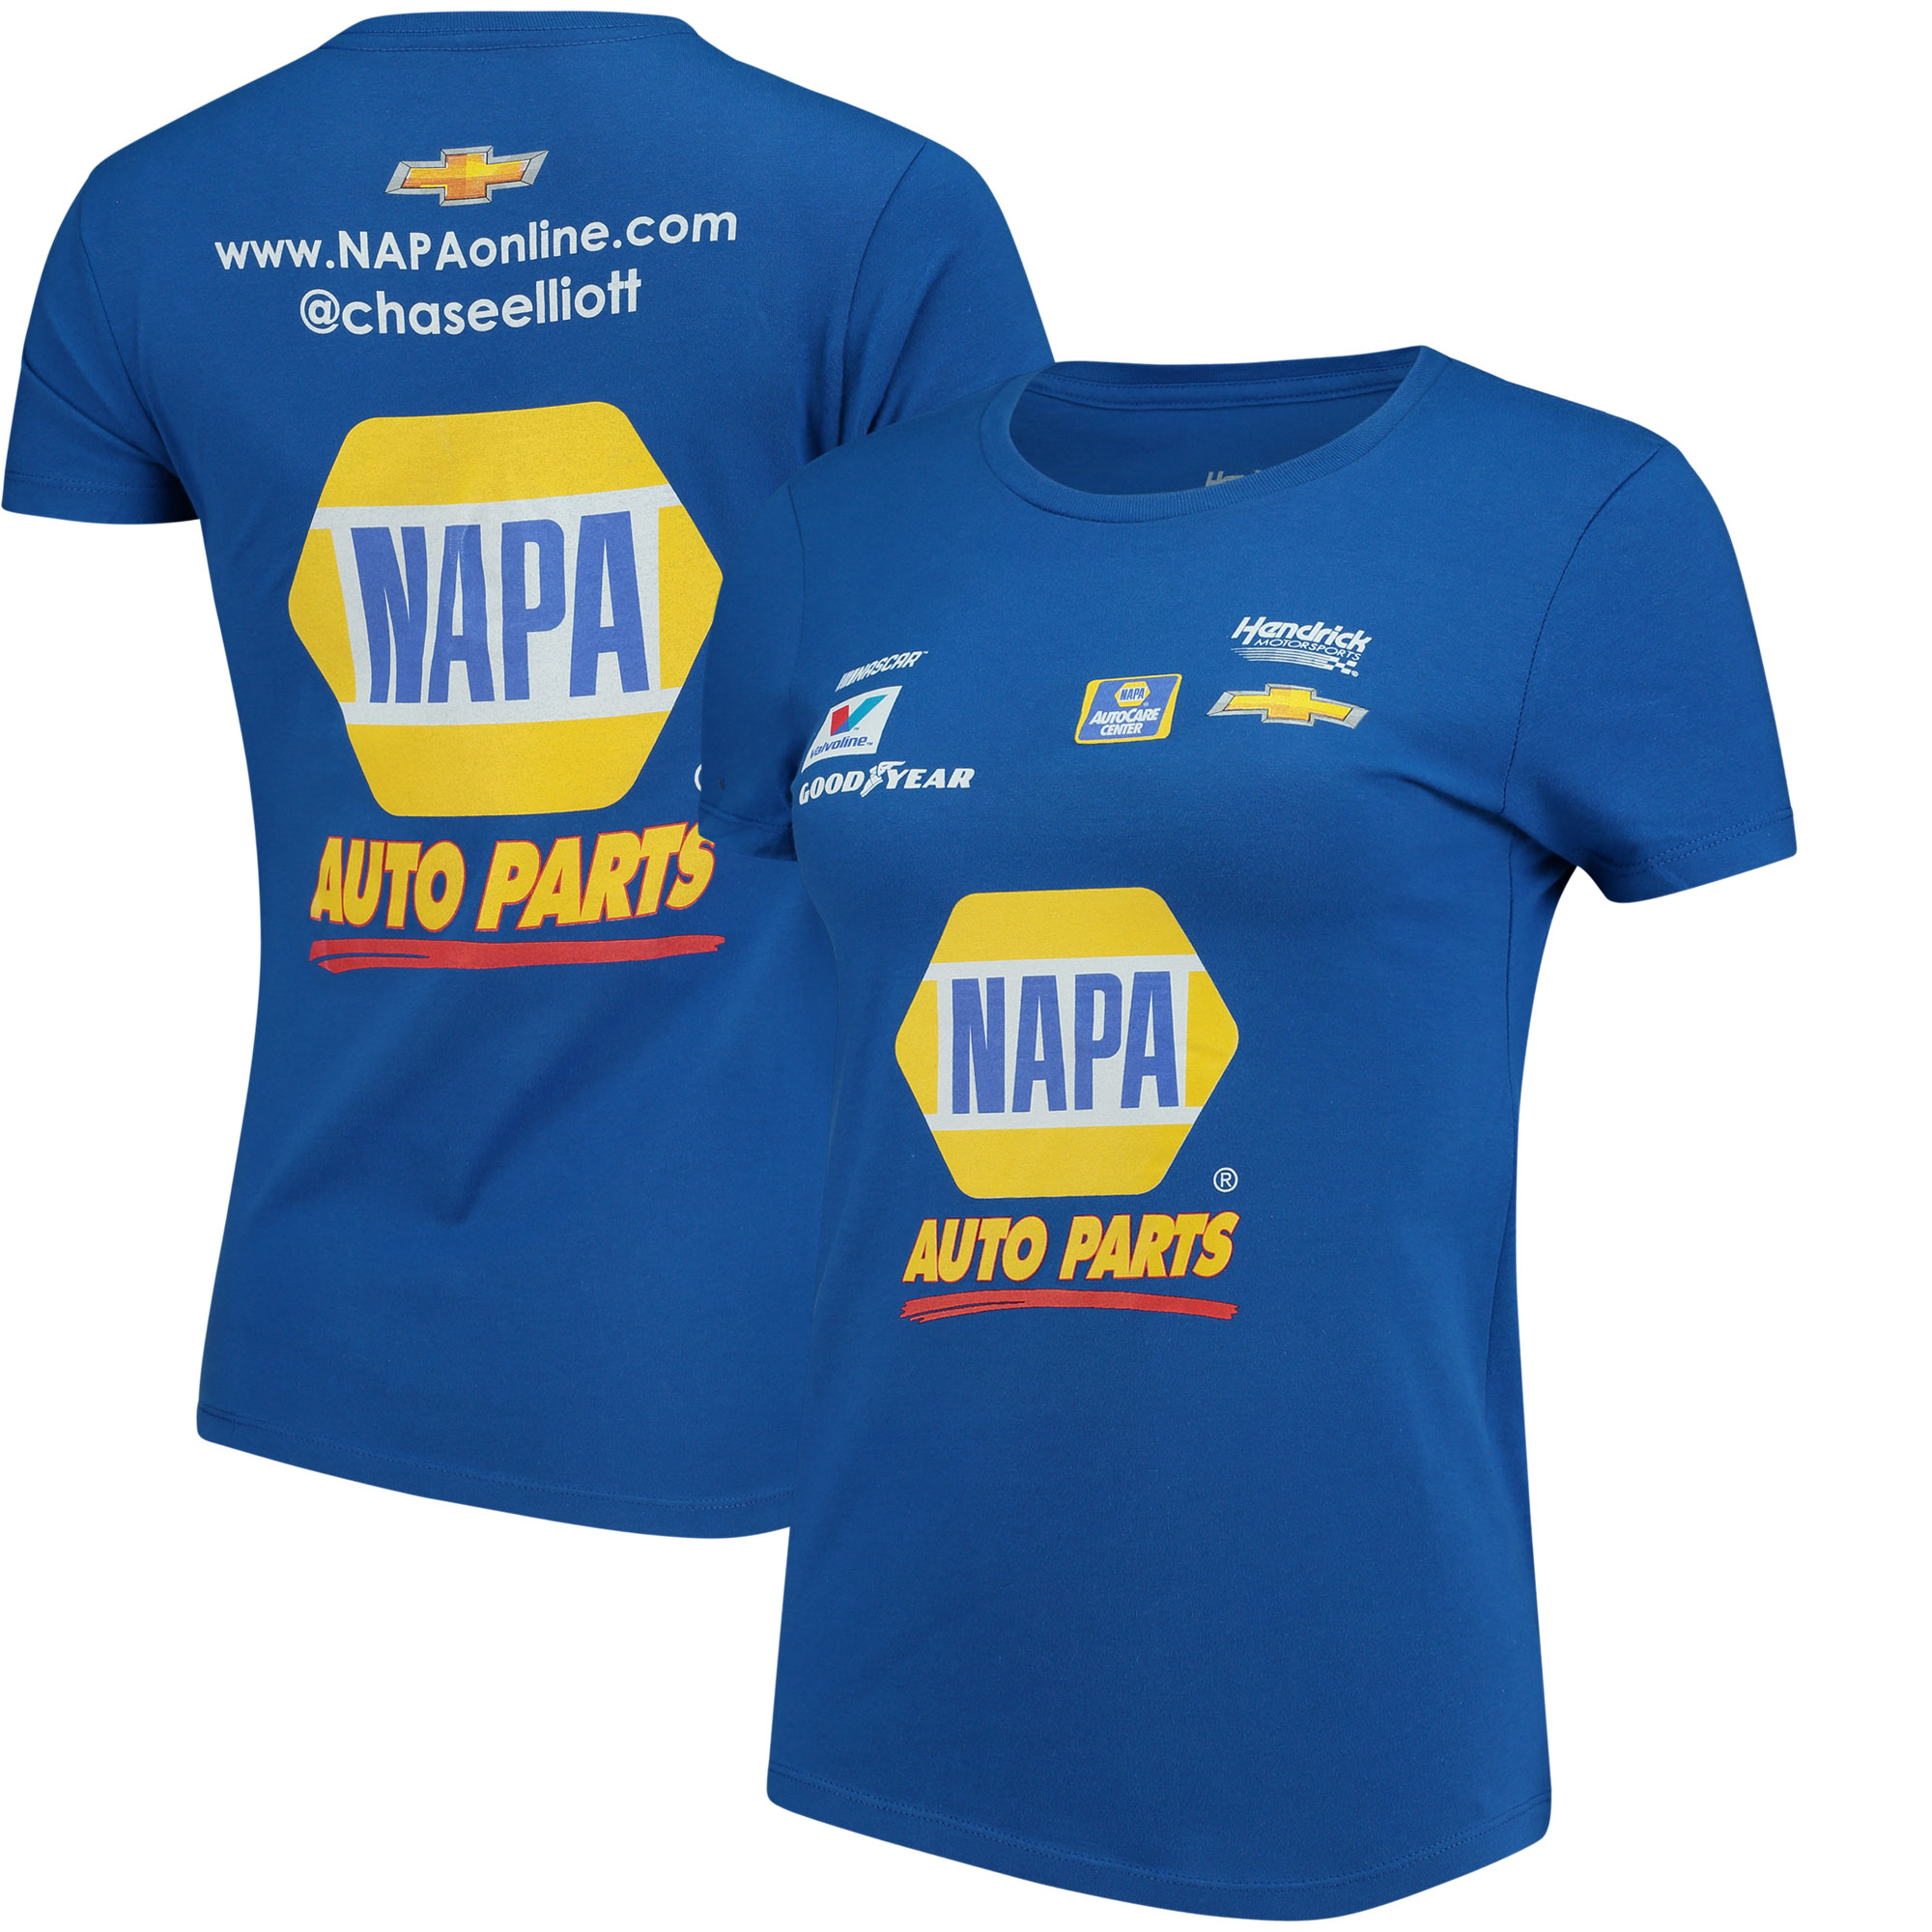 Chase Elliott Hendrick Motorsports Team Collection Women's NAPA Uniform T-Shirt - Royal